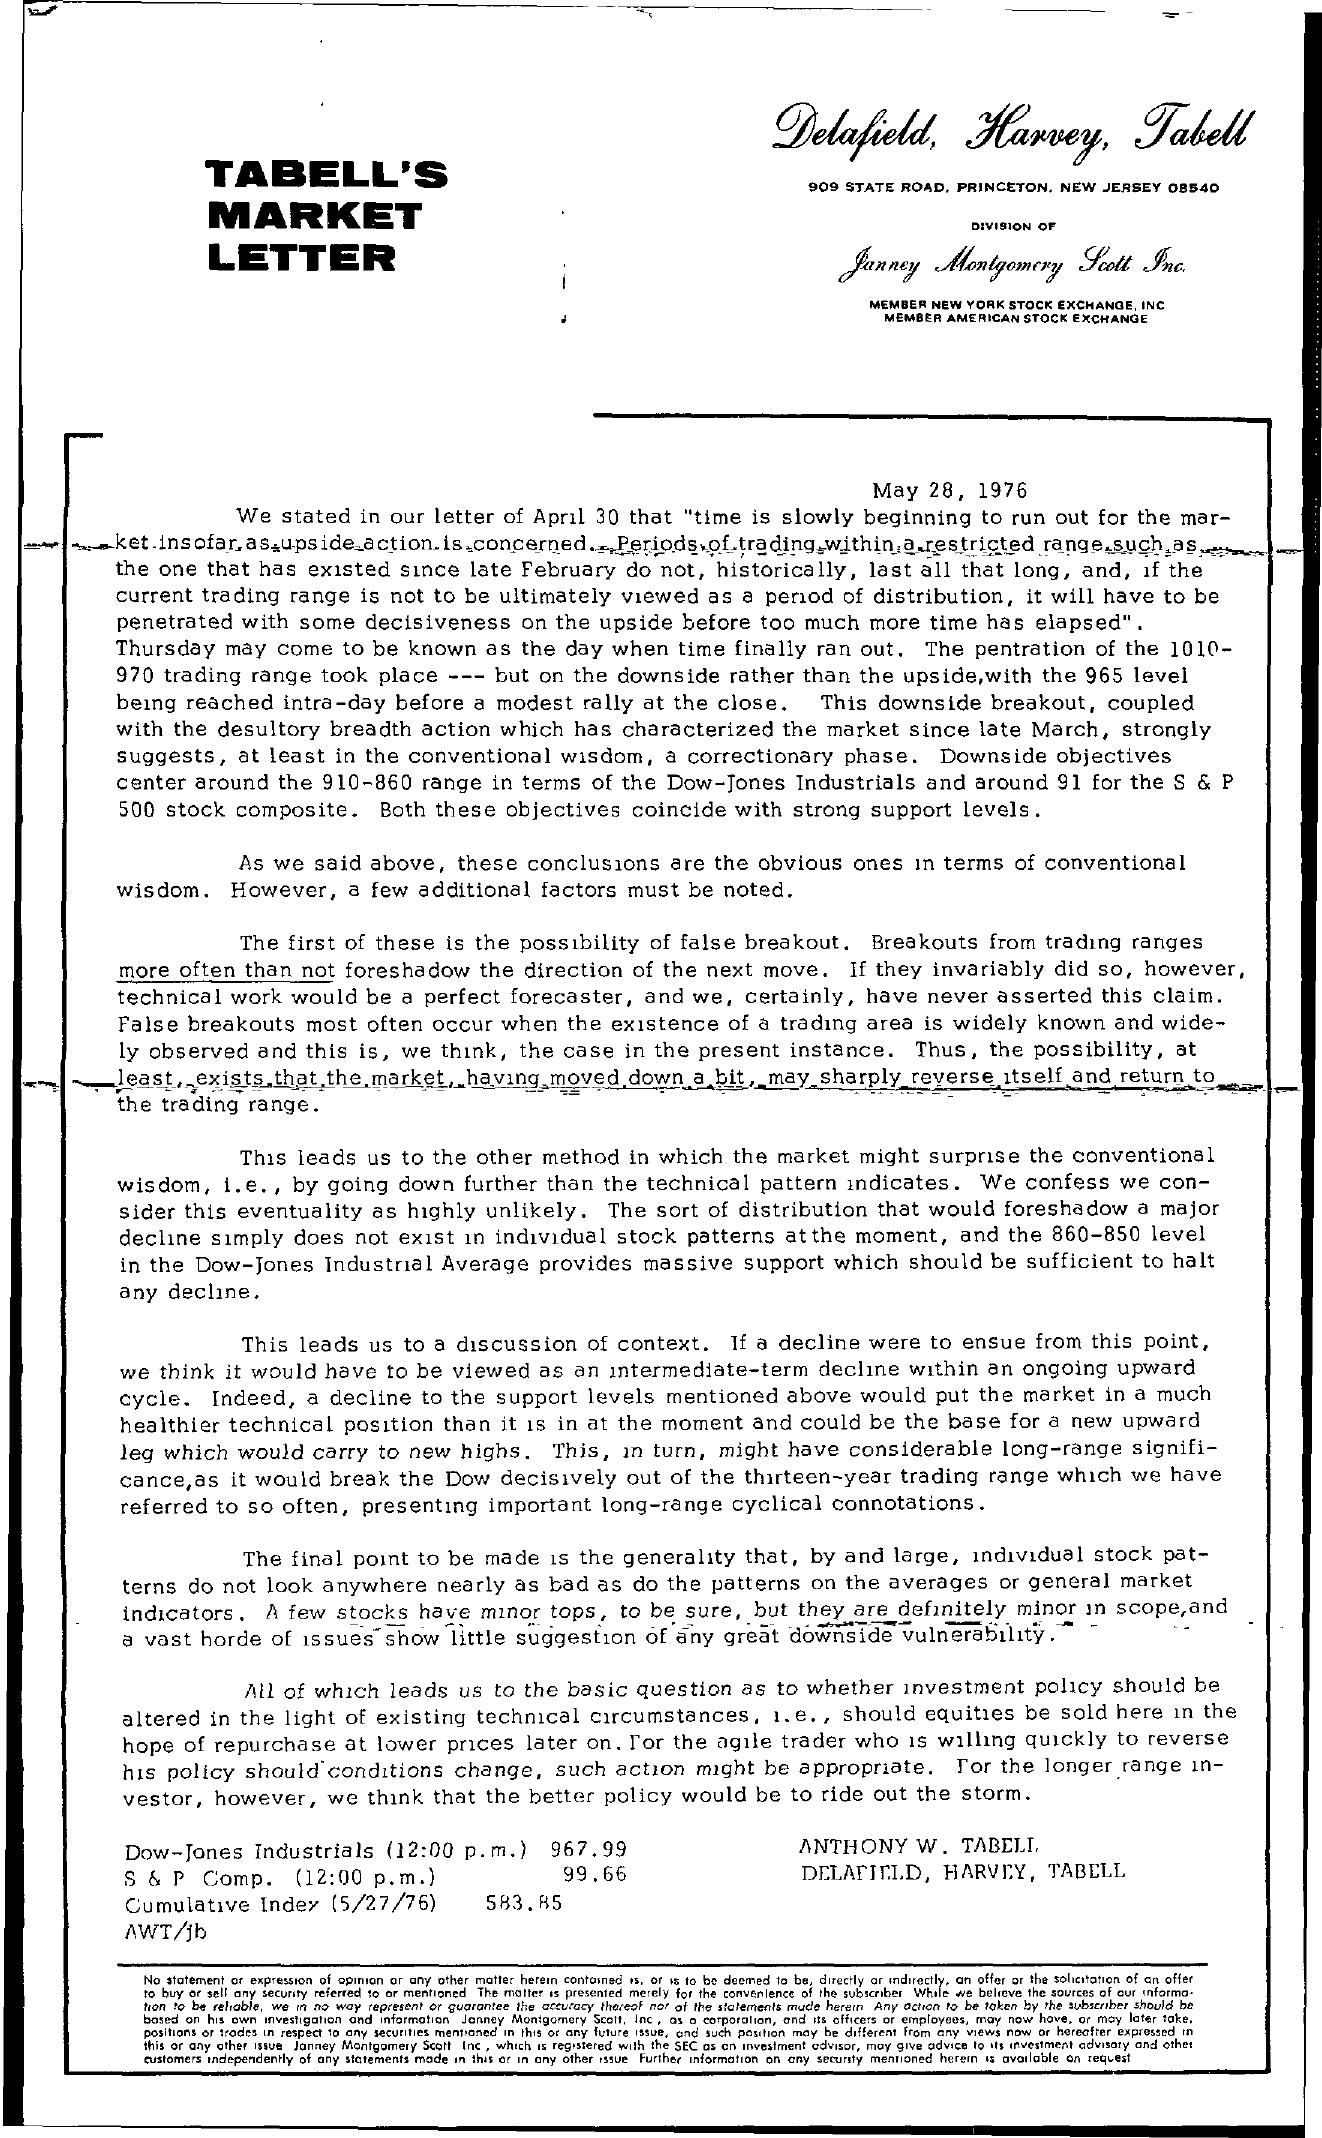 Tabell's Market Letter - May 28, 1976